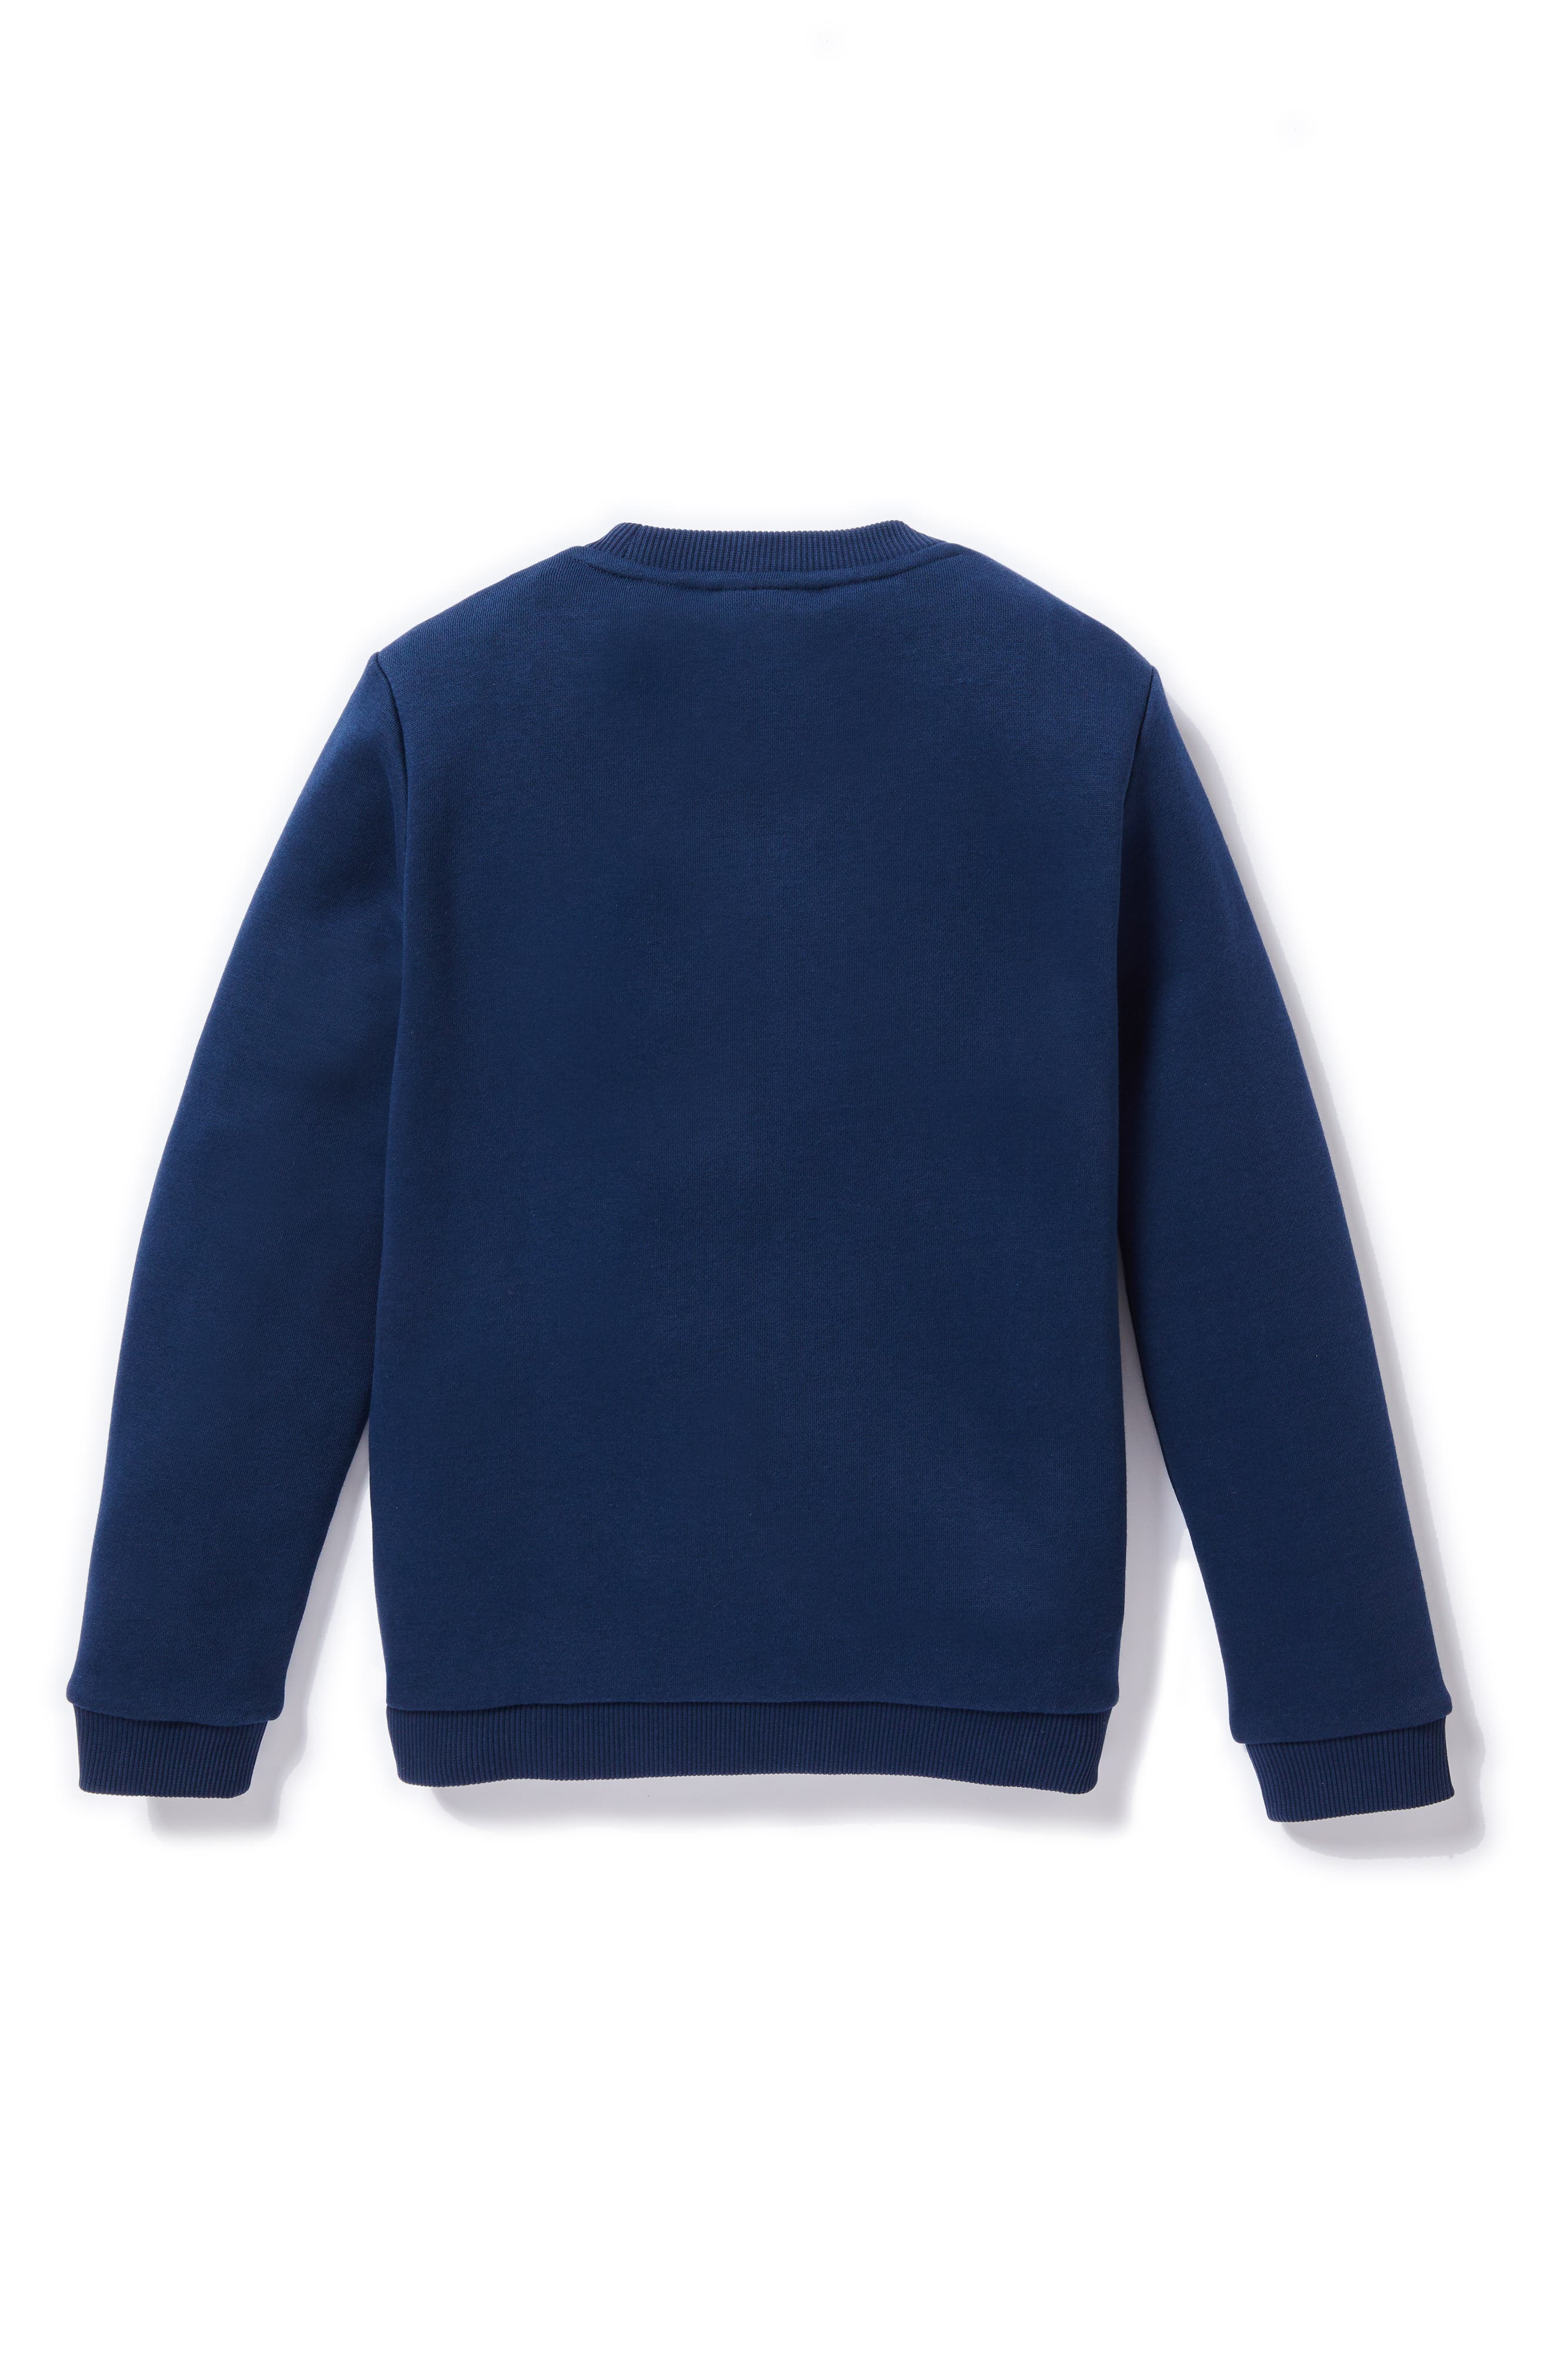 Multicolor Animation Sweatshirt,                             Alternate thumbnail 2, color,                             NAVY BLUE